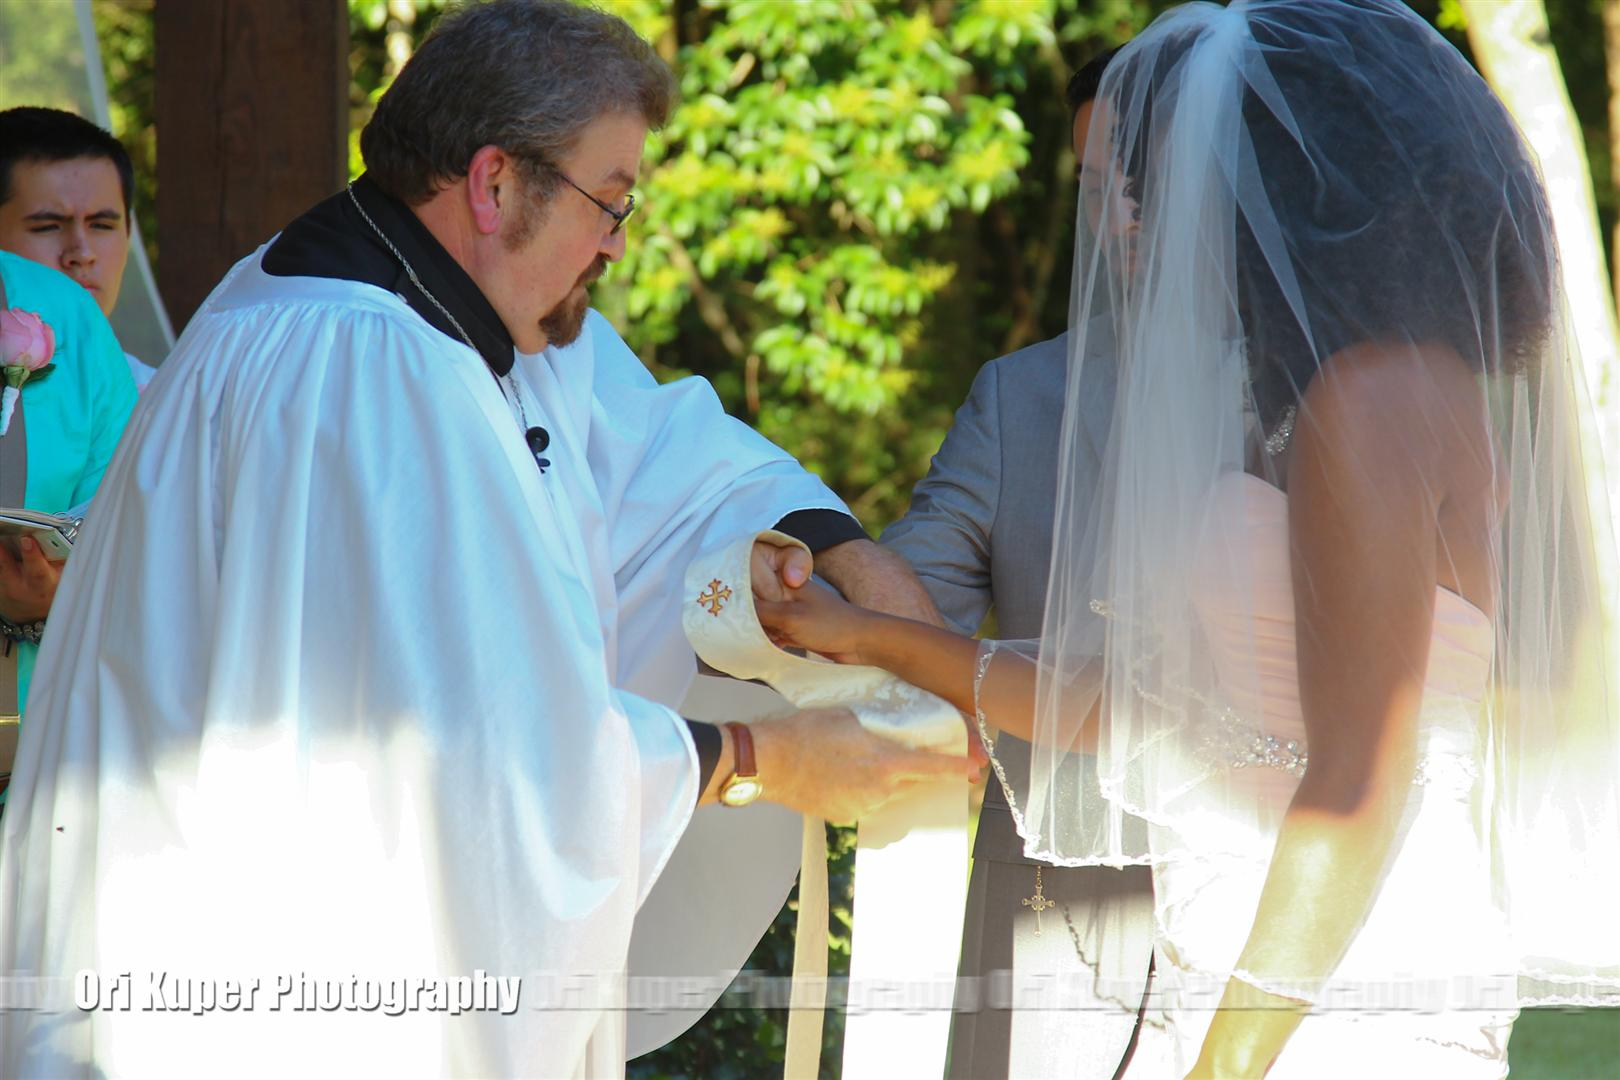 Ori Kuper Photography Weddings Josh Aubrey IMG_4411.jpg